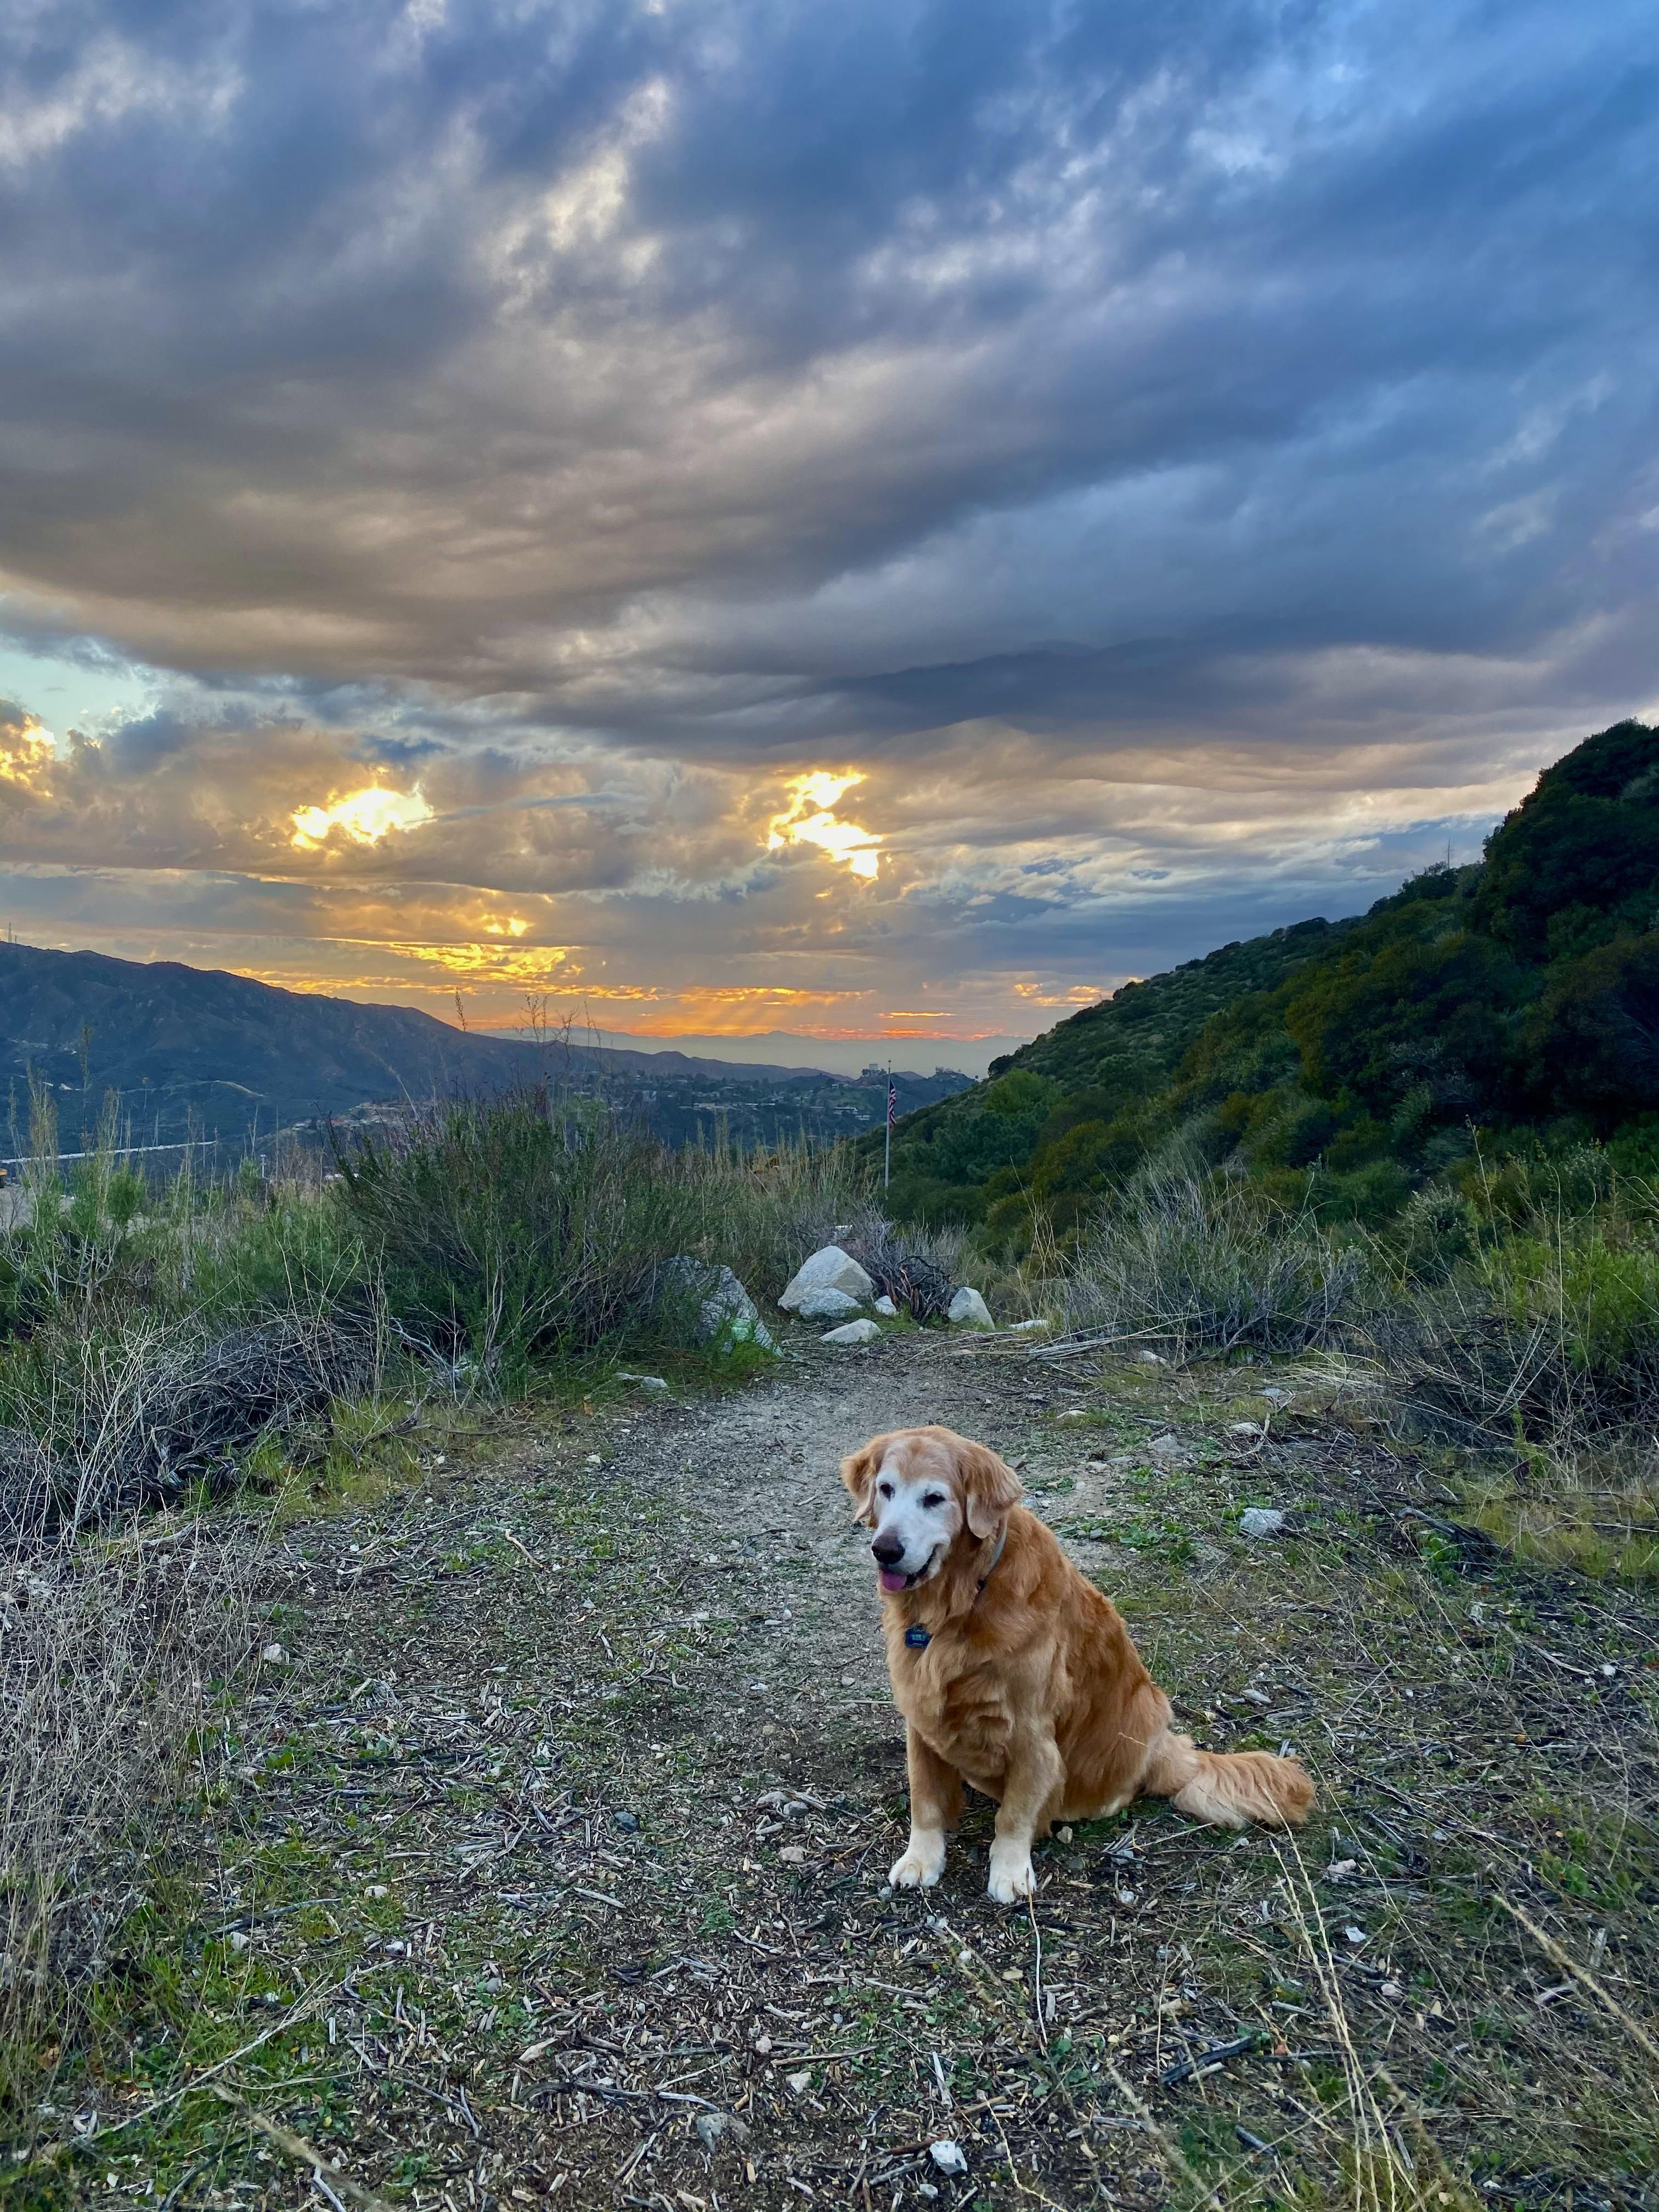 A golden at a golden sunset oc your daily dose of cute